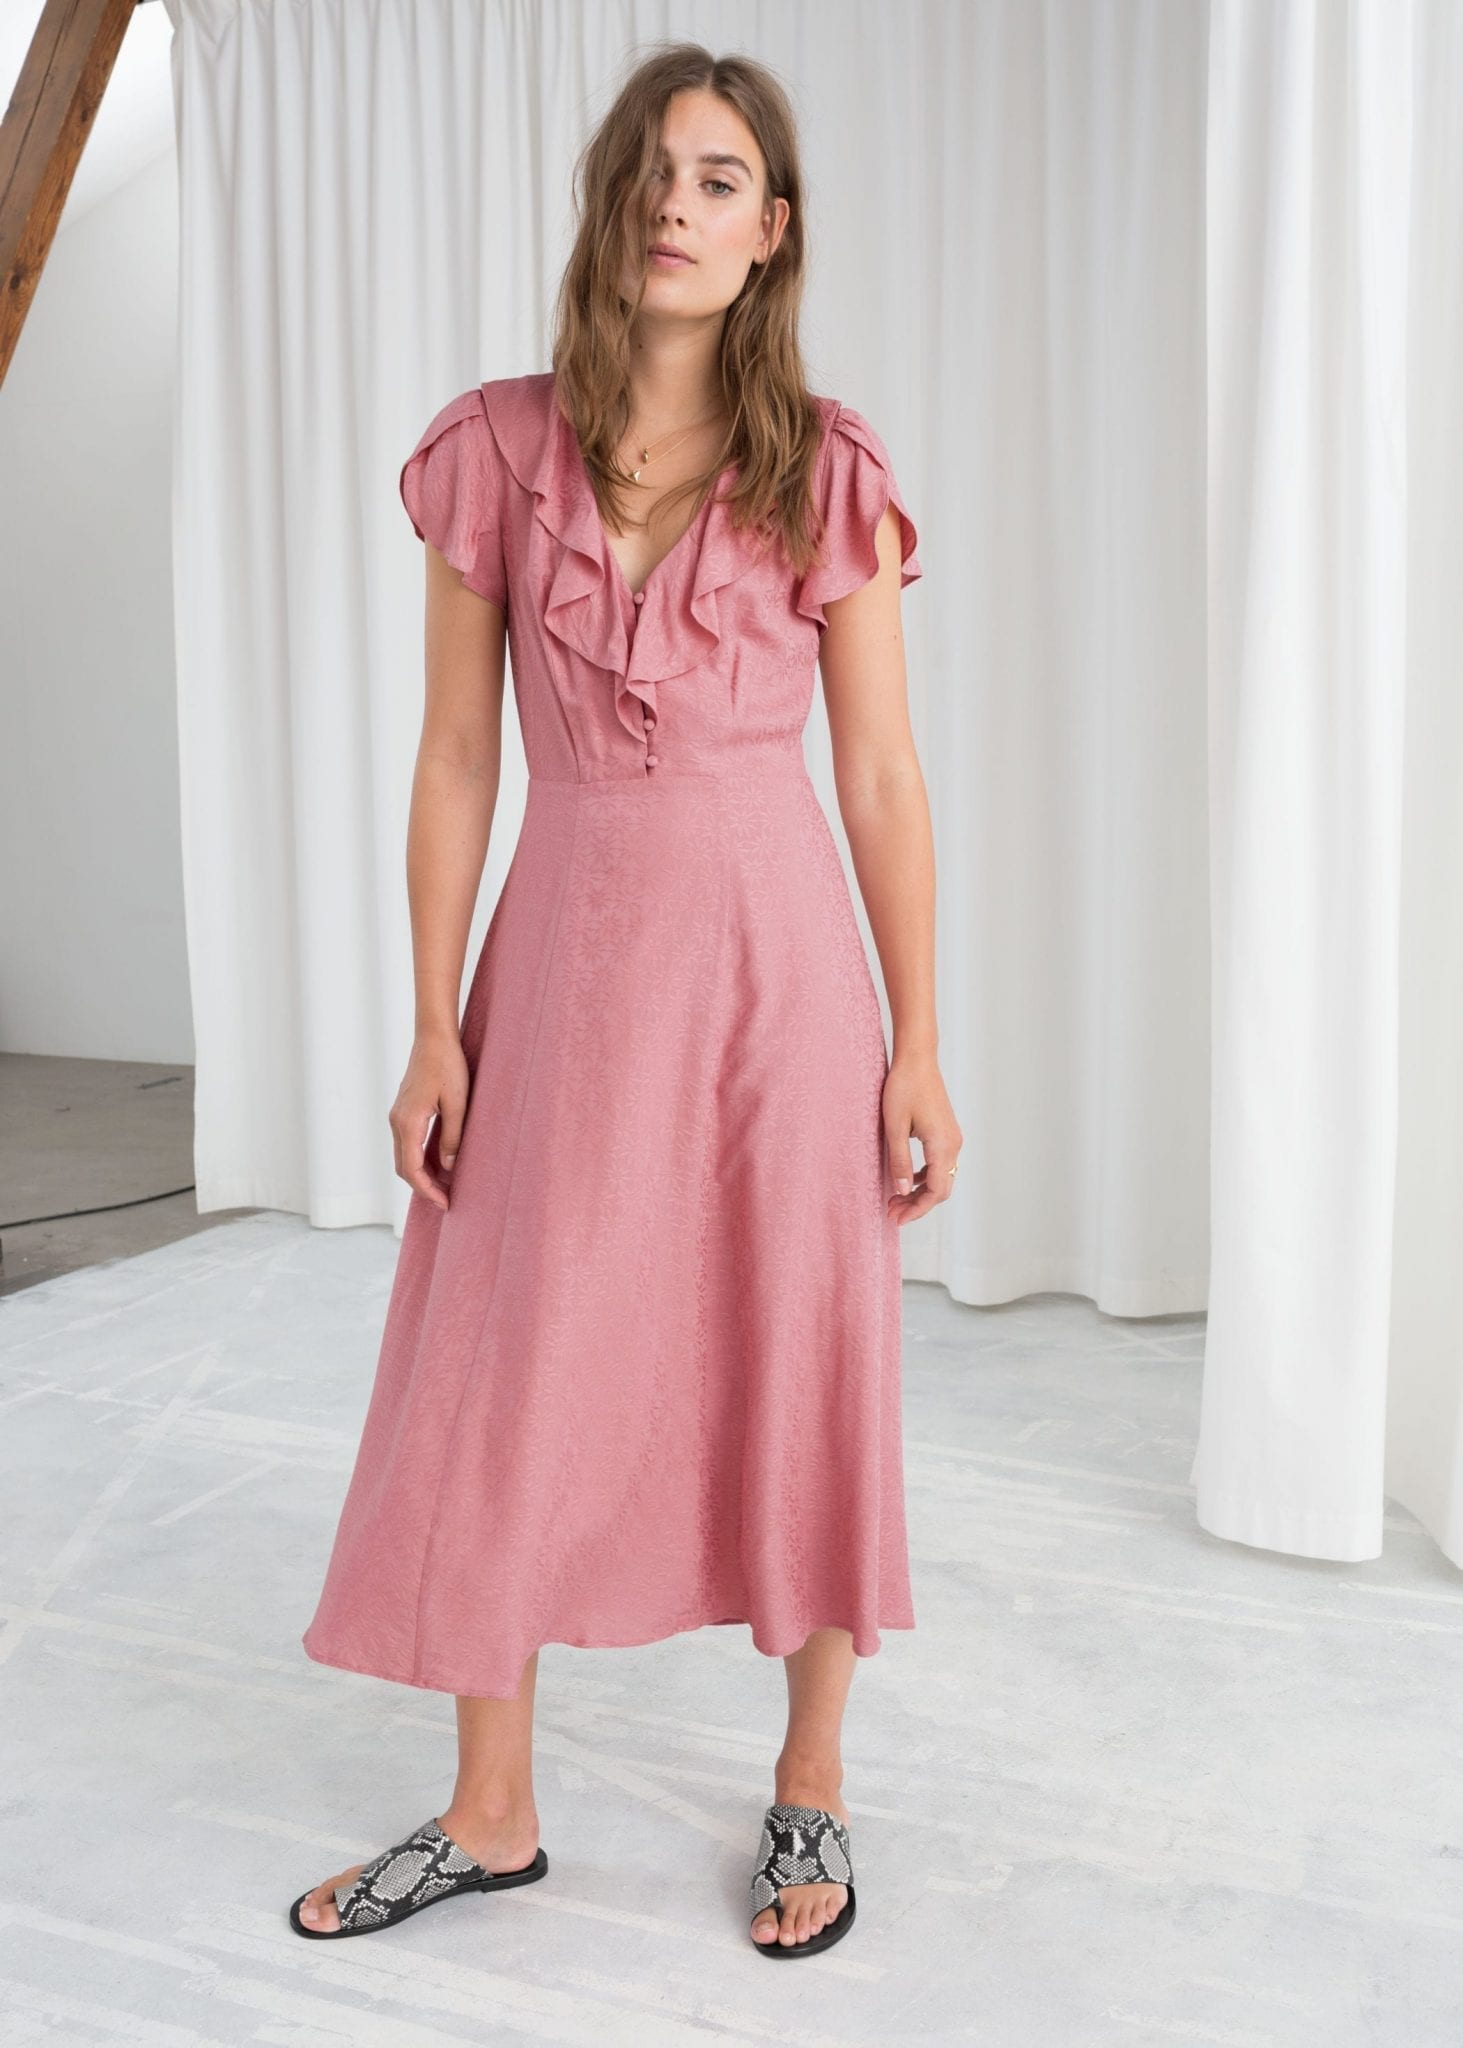 & OTHER STORIES Ruffle Lapel Pink Dress